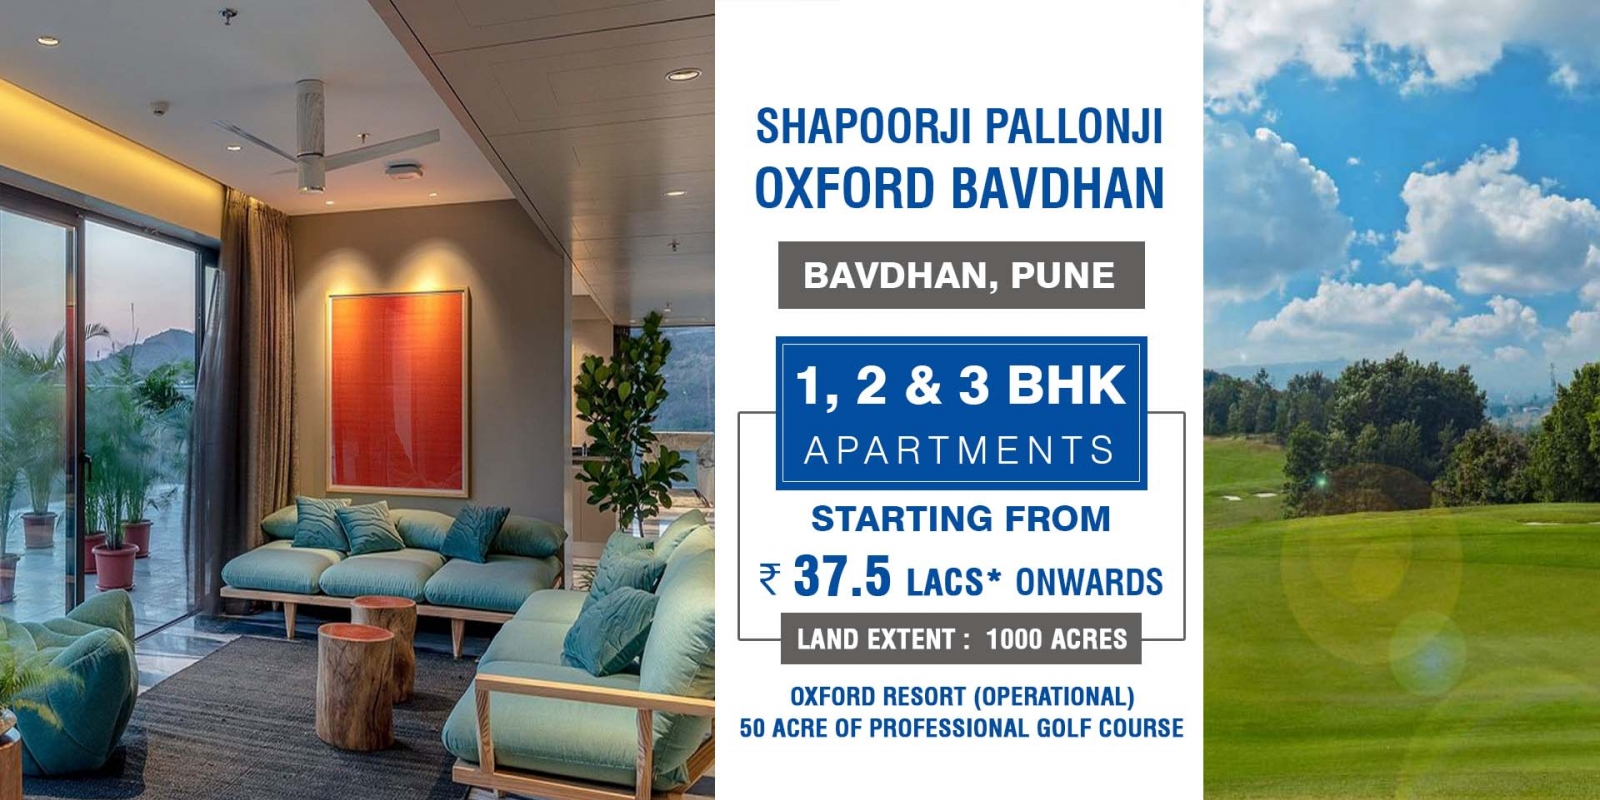 shapoorji pallonji oxford valley bhavdhan